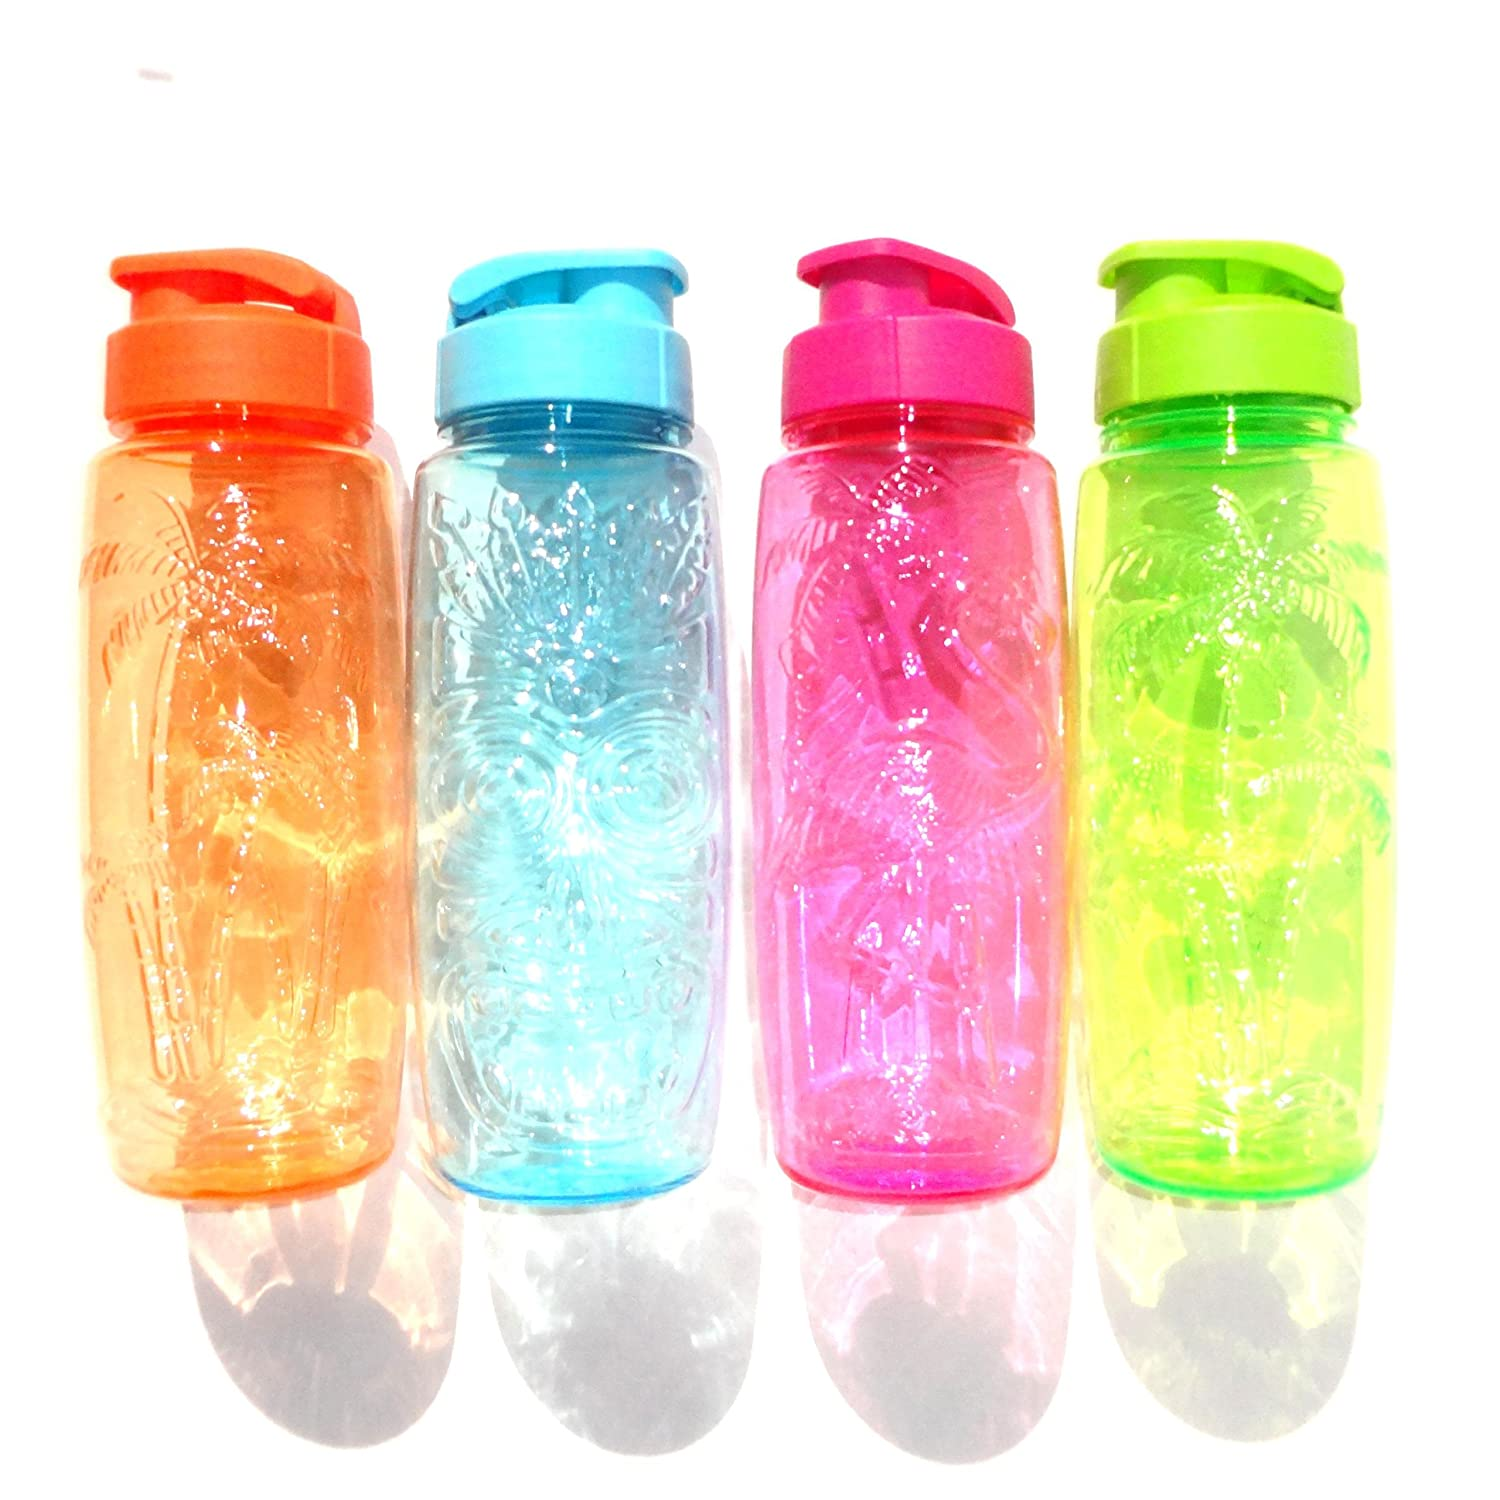 Plastic Acrylic Tumbler Sports Bottle with Flip Top - Luau Theme Set of 4